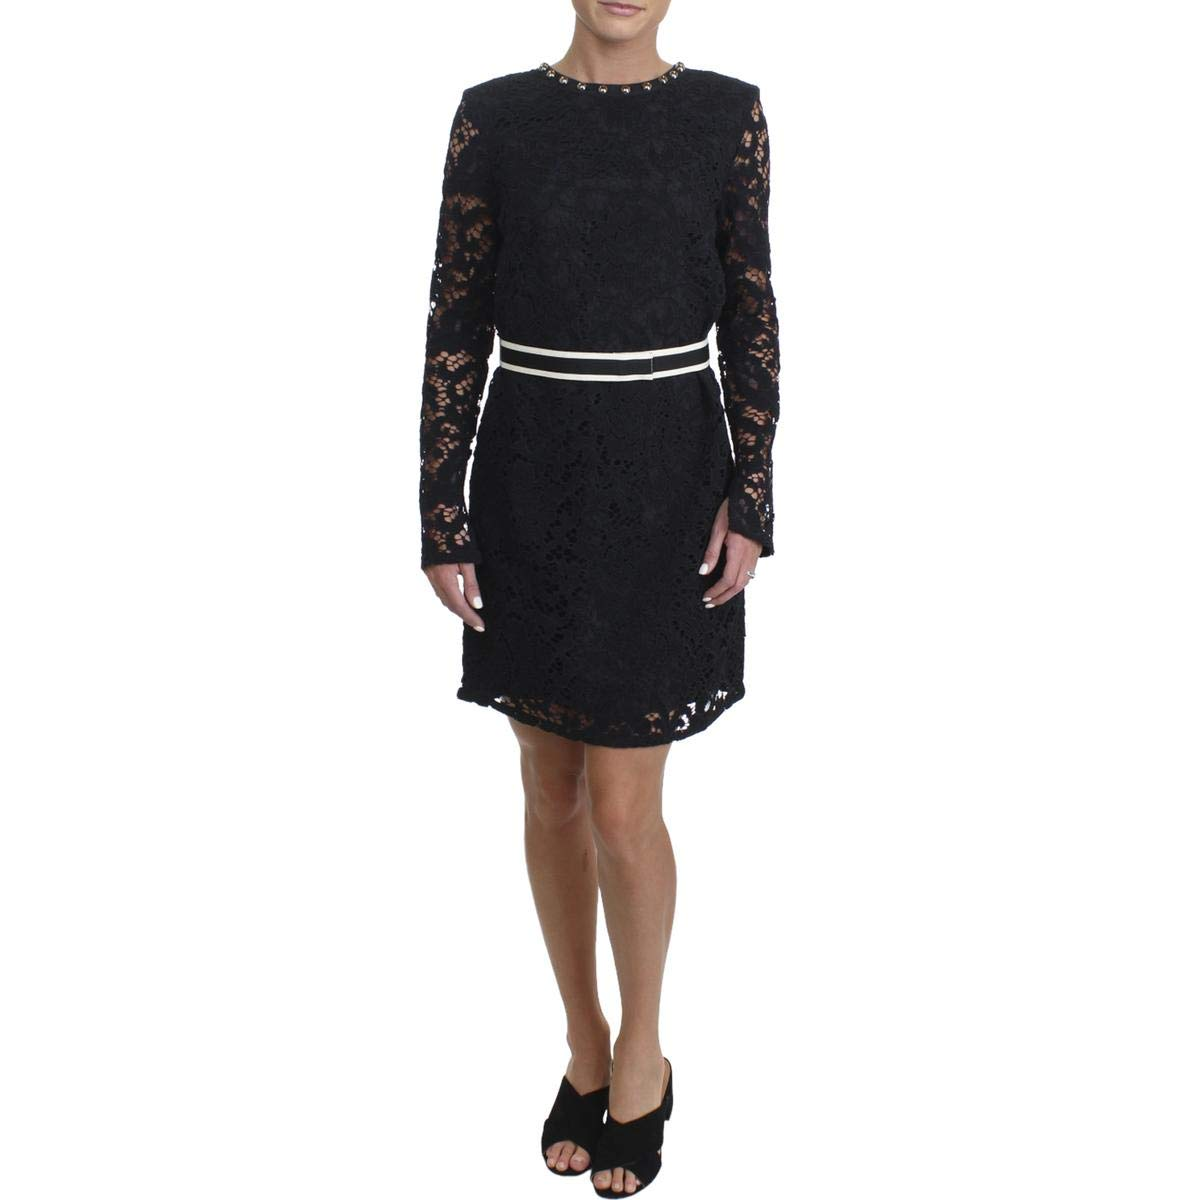 Juicy Couture Women's Stevie Lace Dress w/Embroidery Pitch Black 4